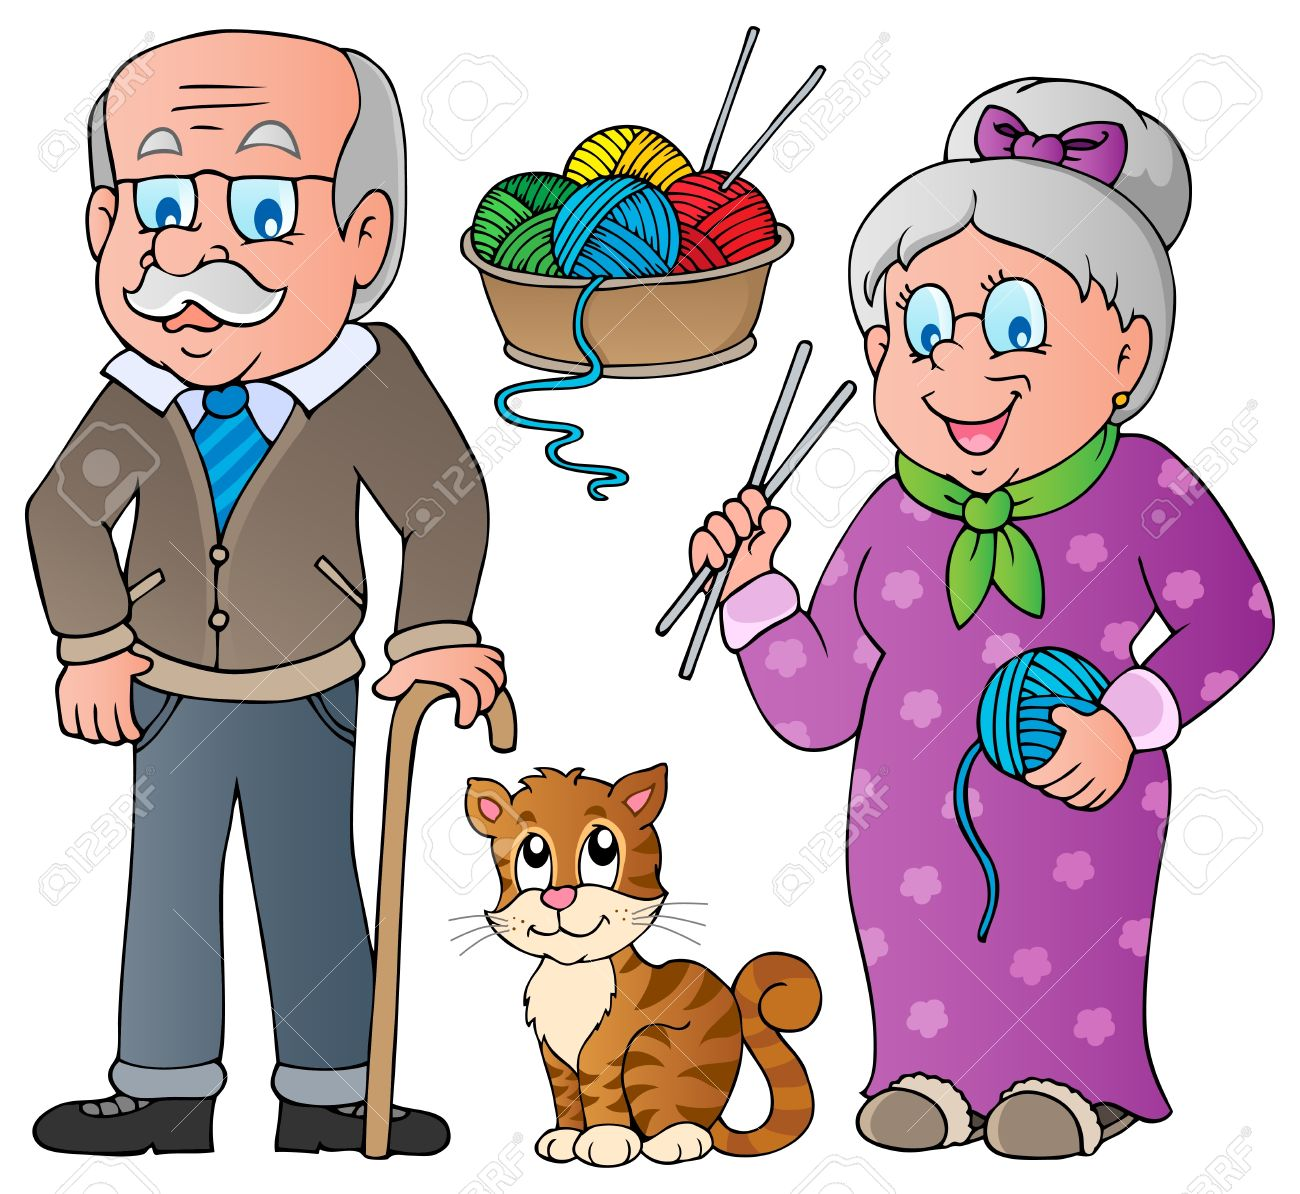 Clipart oma und opa banner Clipart opa im sessel - ClipartFox banner